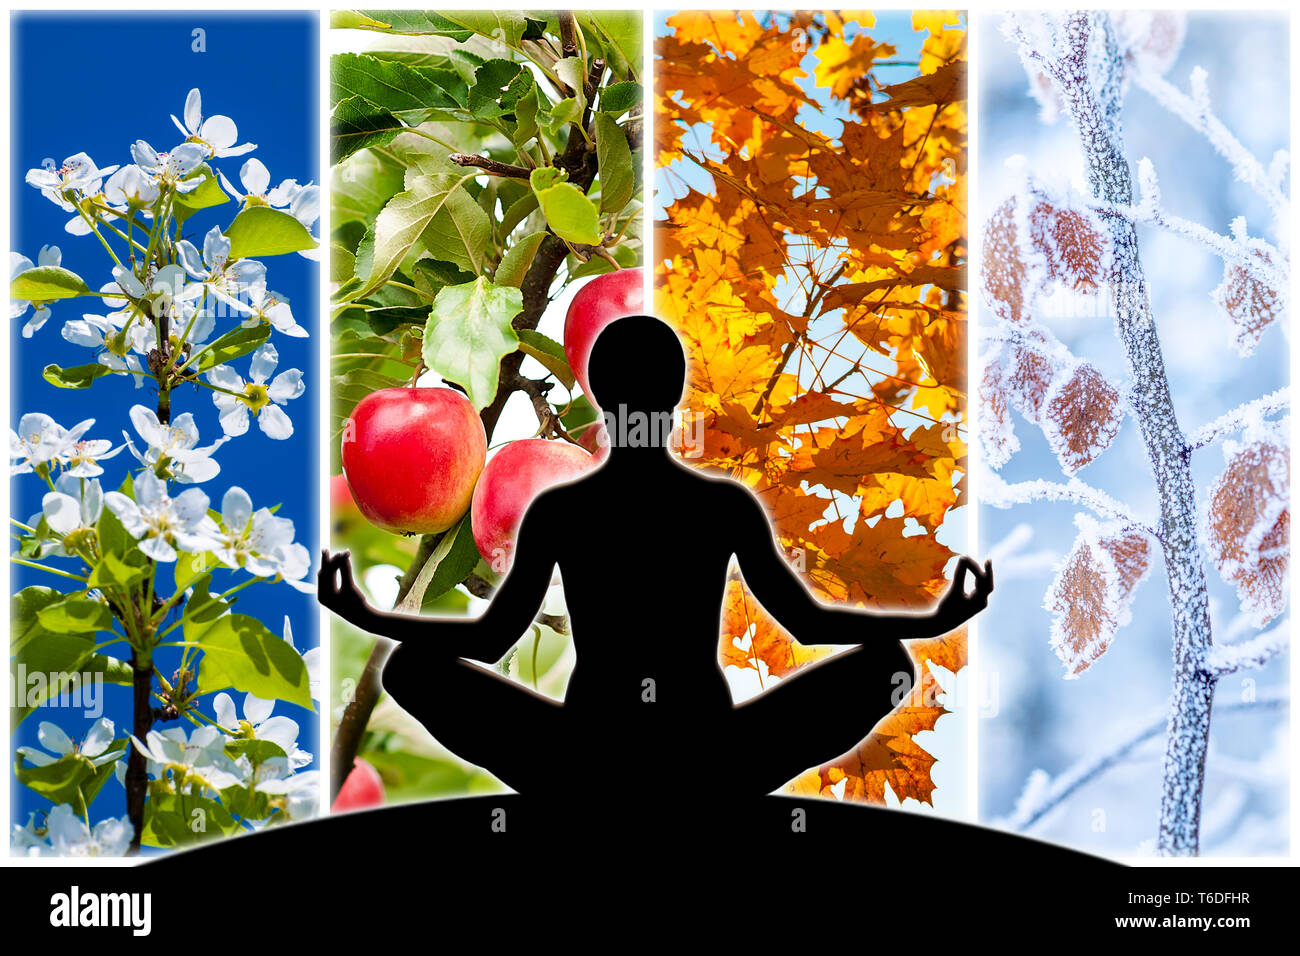 Female yoga figure silhouette against collage of four pictures representing each season: spring, summer, autumn and winter. - Stock Image